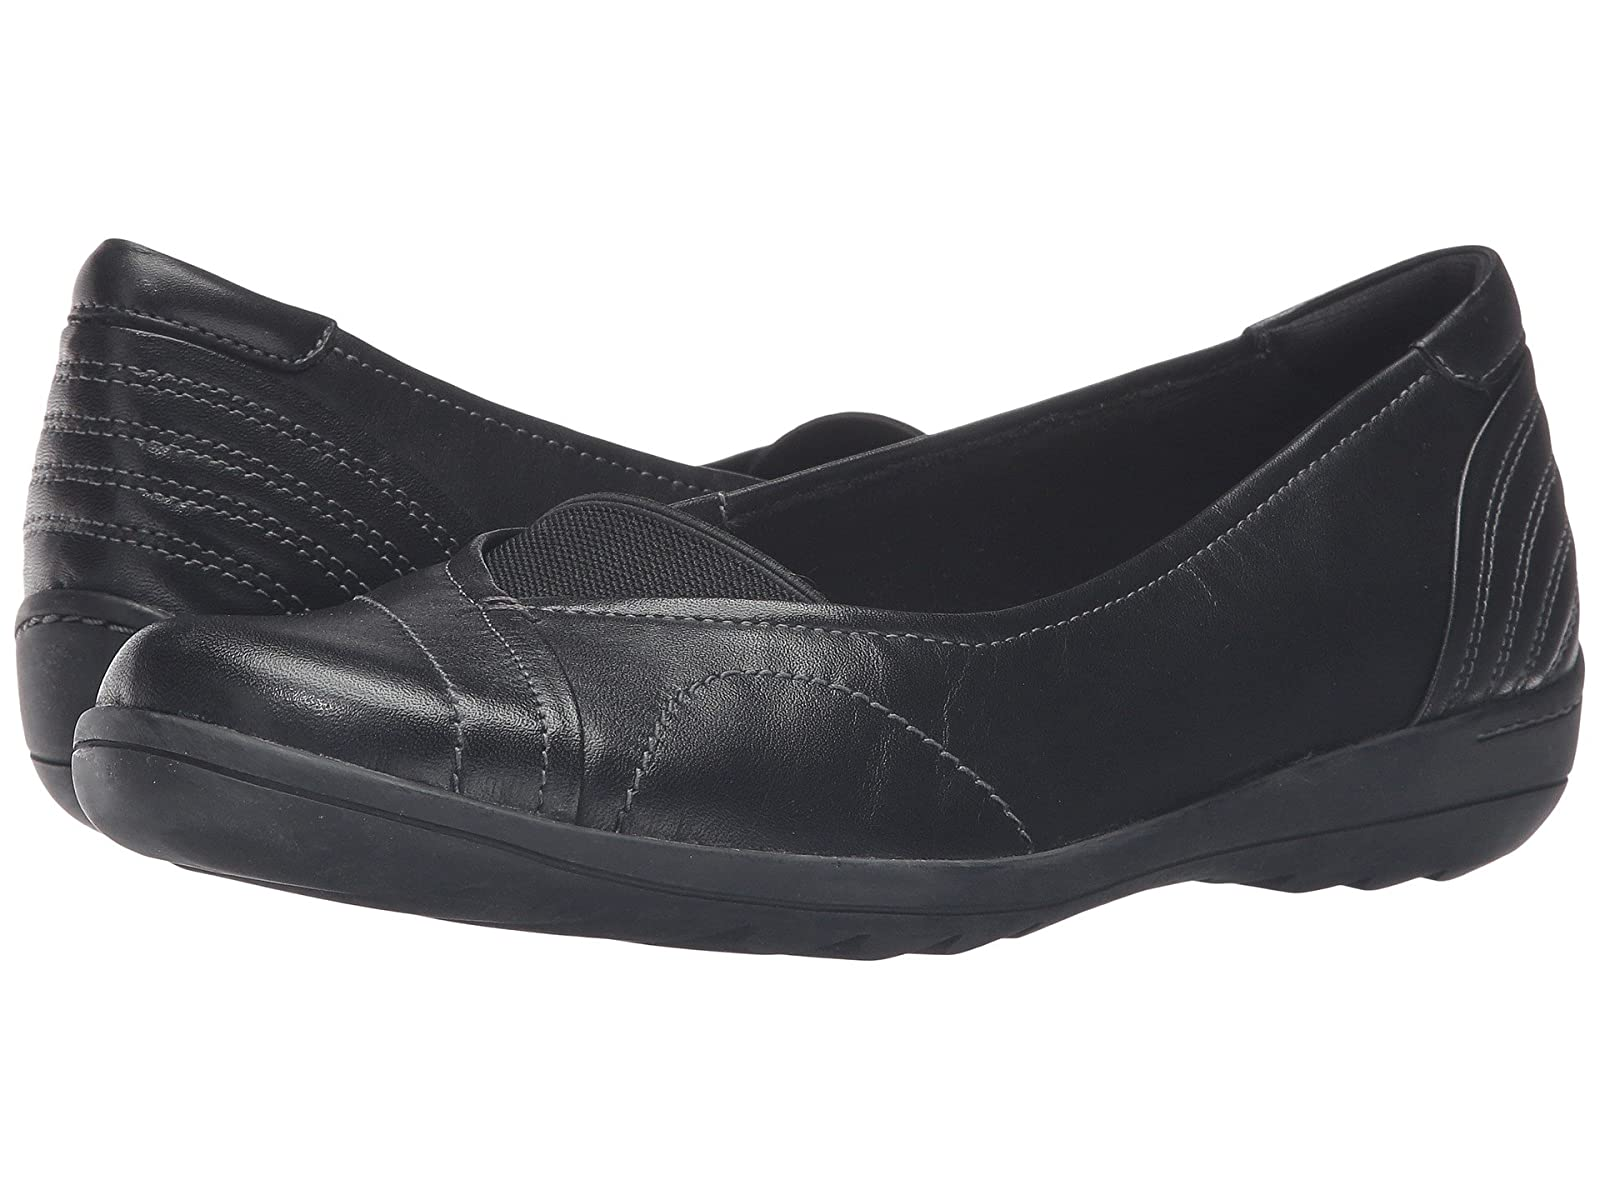 Rockport Cobb Hill Collection Cobb Hill LizzieCheap and distinctive eye-catching shoes